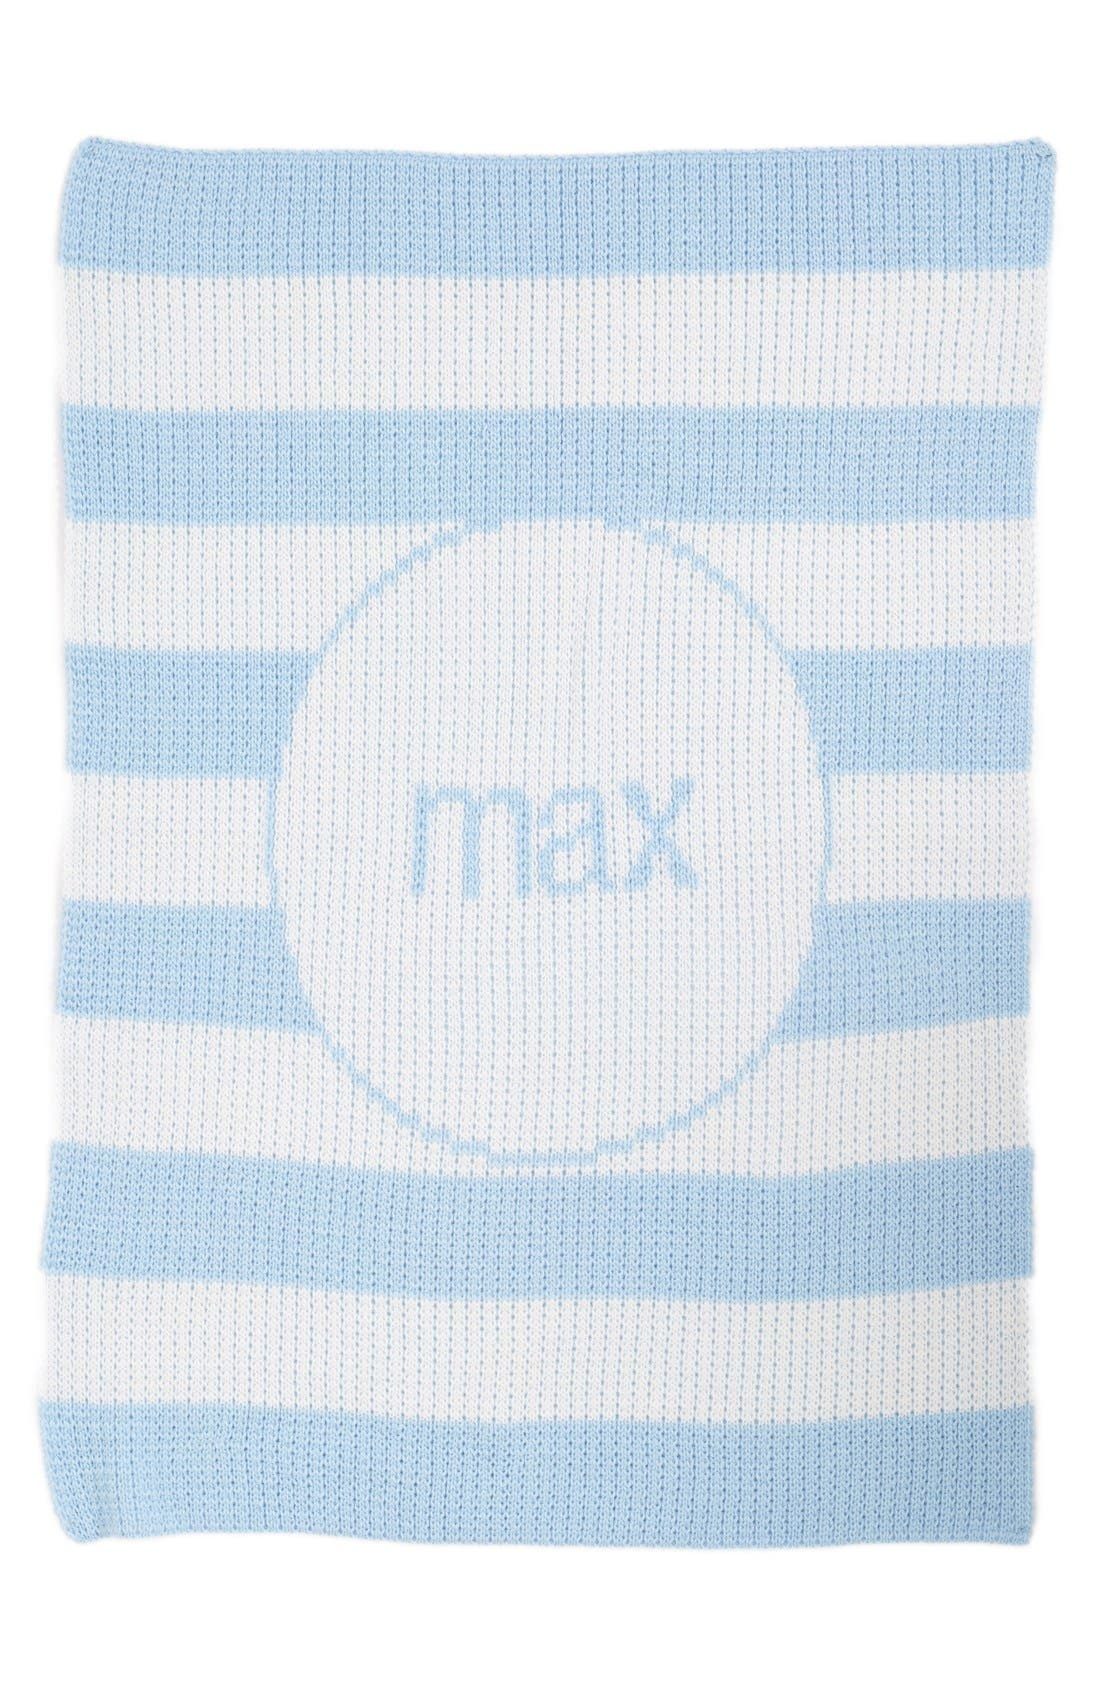 'Modern Stripe' Personalized Stroller Blanket,                         Main,                         color, White/ Pale Blue